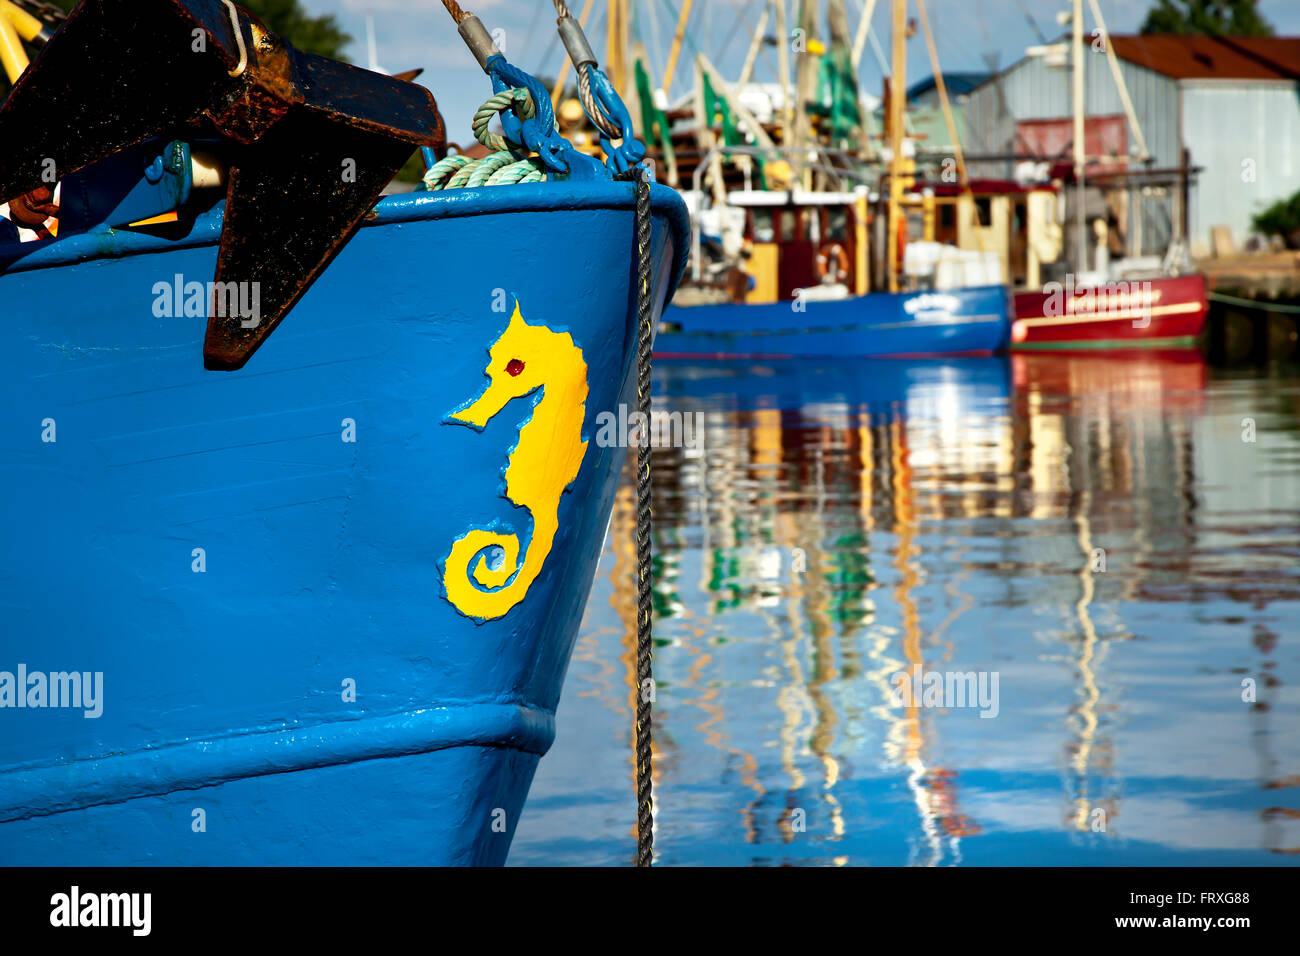 Fishing boats in the harbour, Buesum, Dithmarschen, North Sea coast, Schleswig-Holstein, Germany - Stock Image